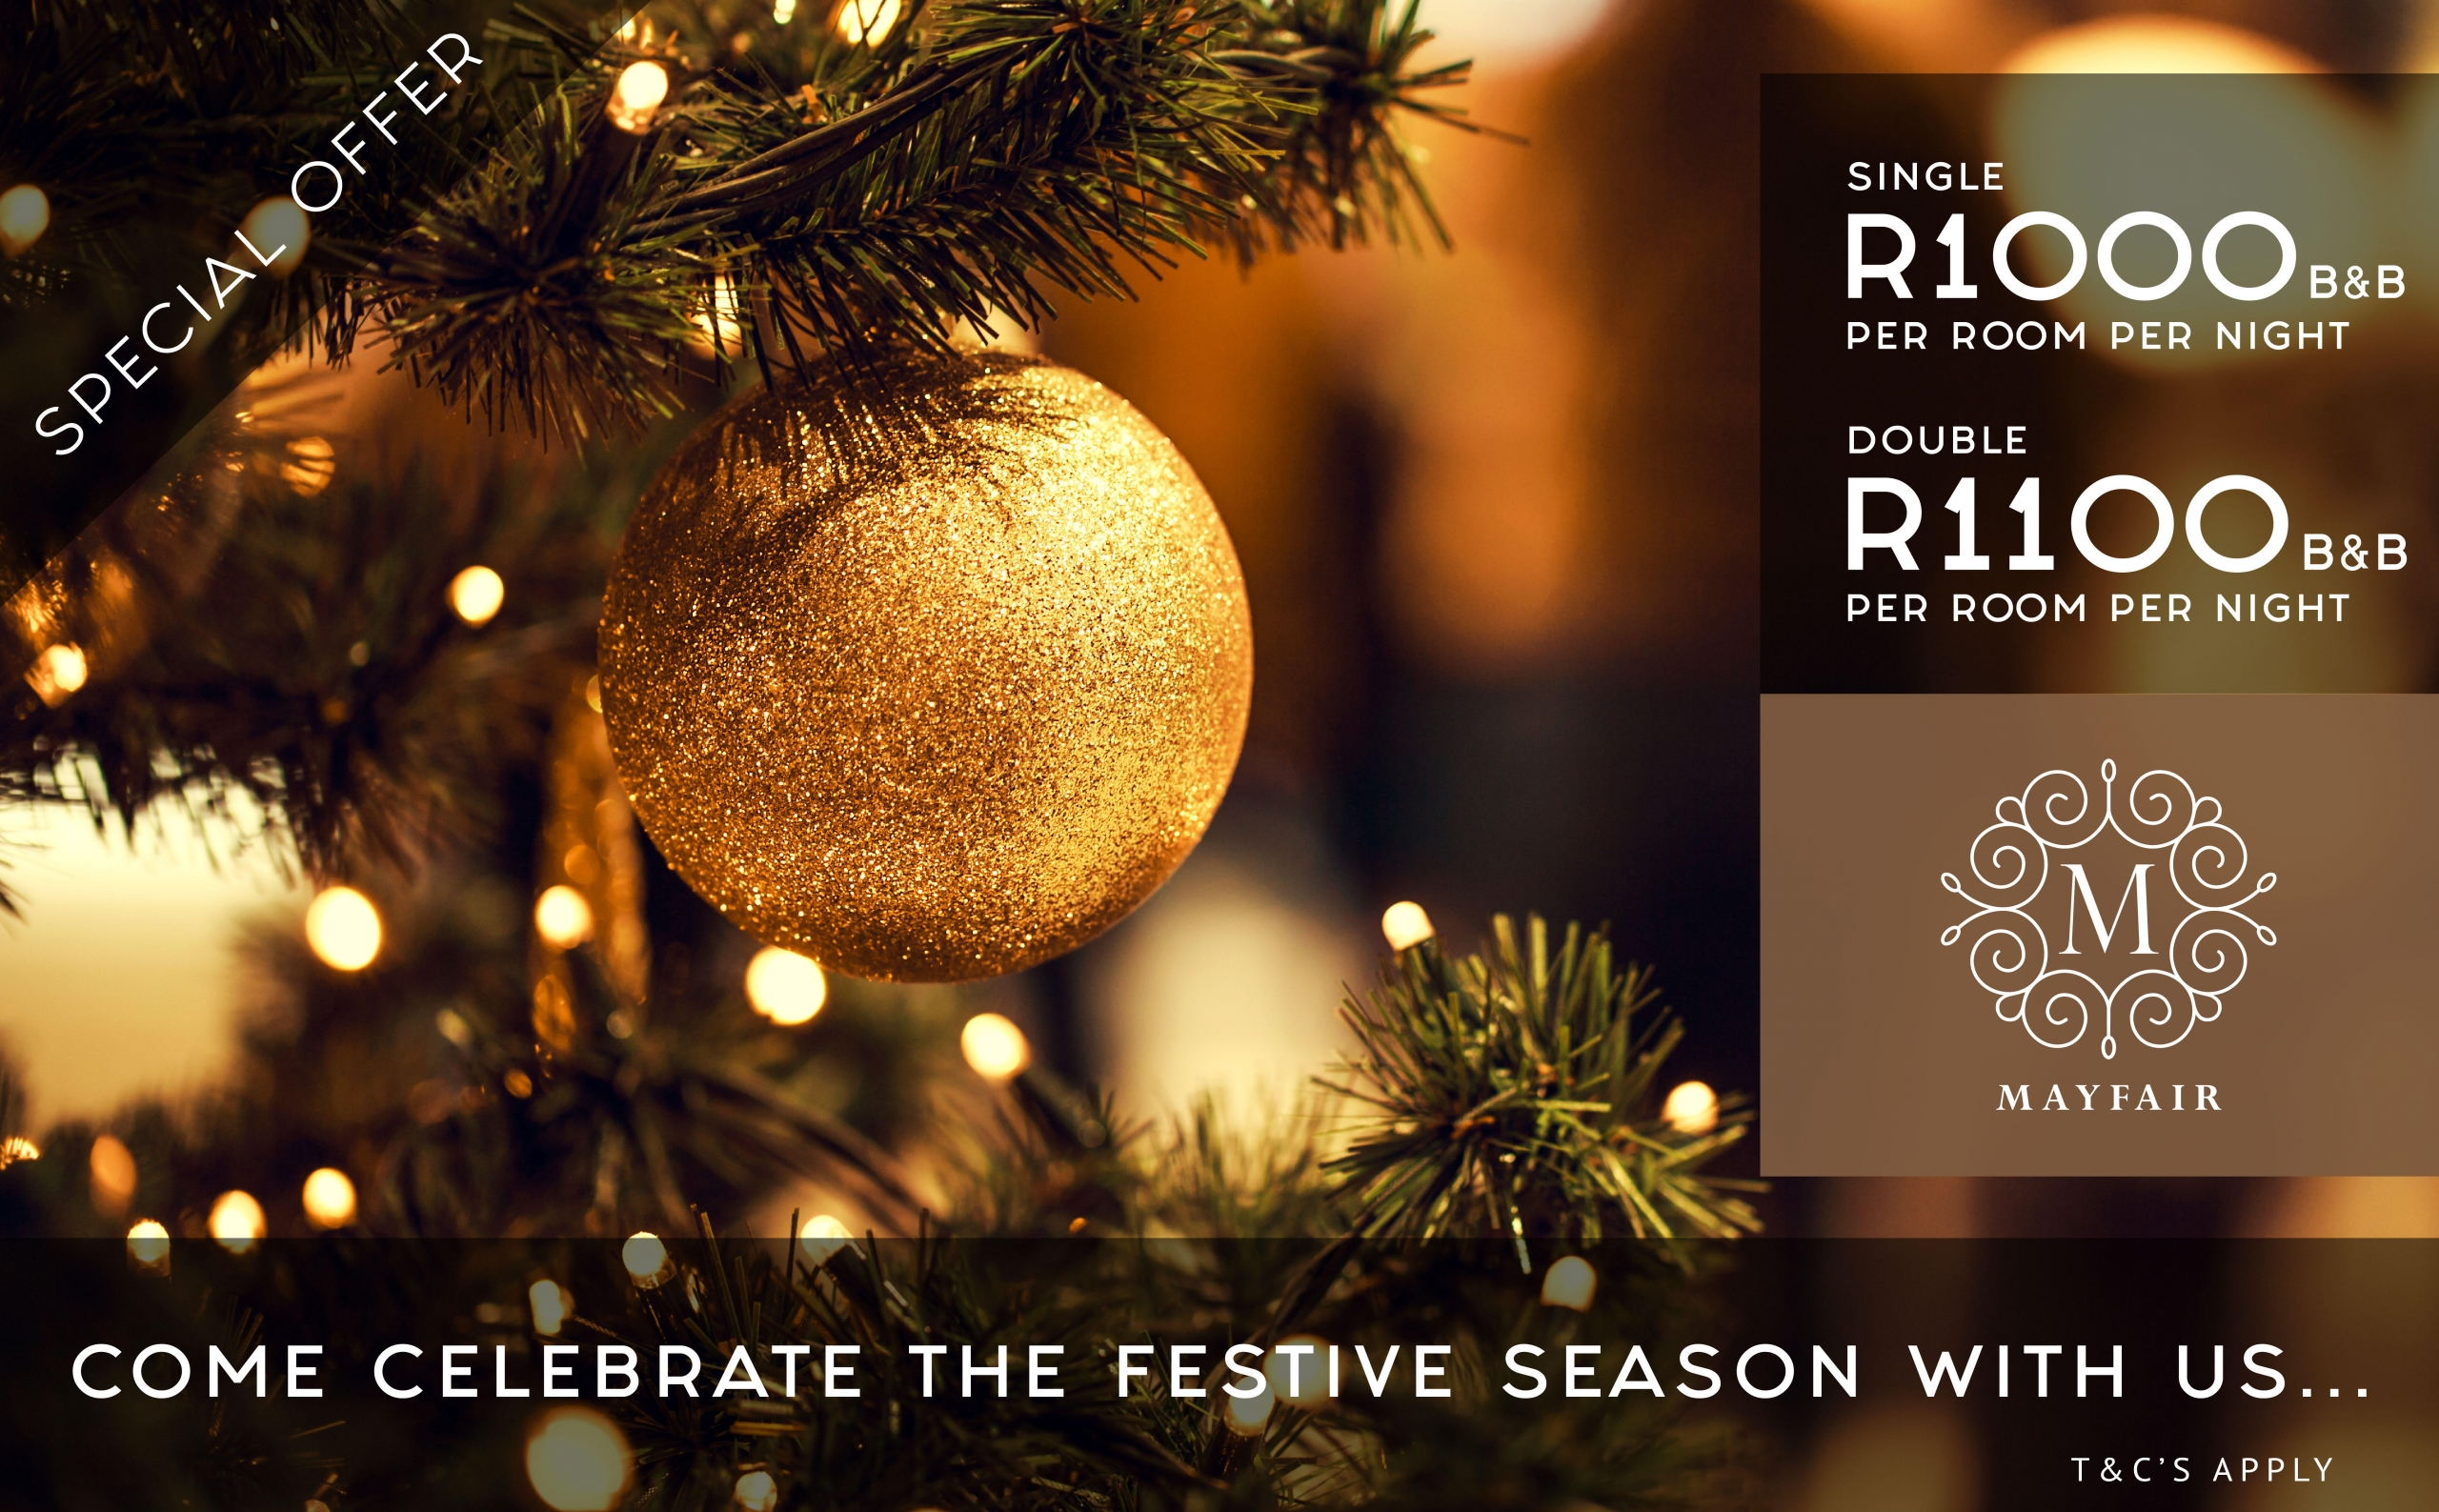 Mayfair Hotel | Festive Season Special